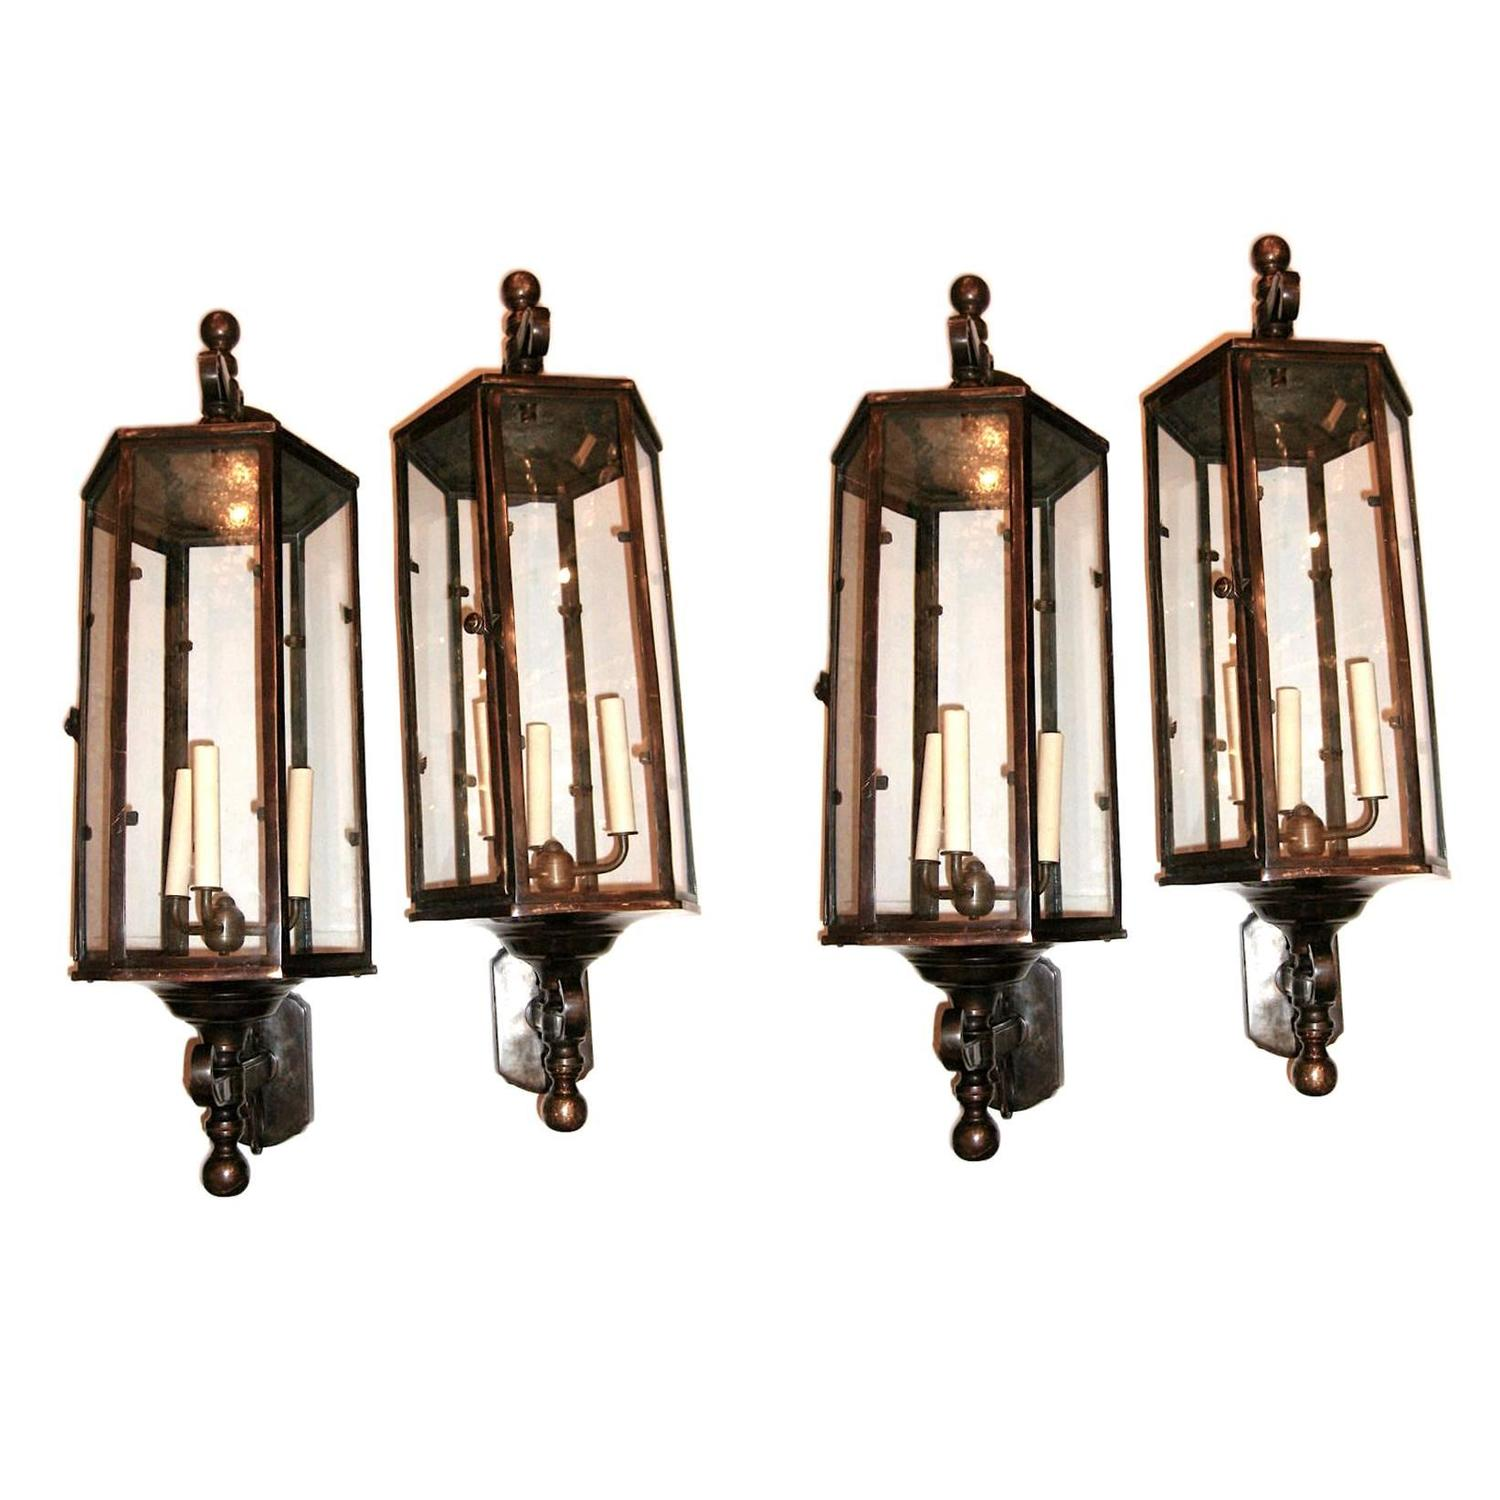 Set of Four Outdoor Lanterns For Sale at 1stdibs